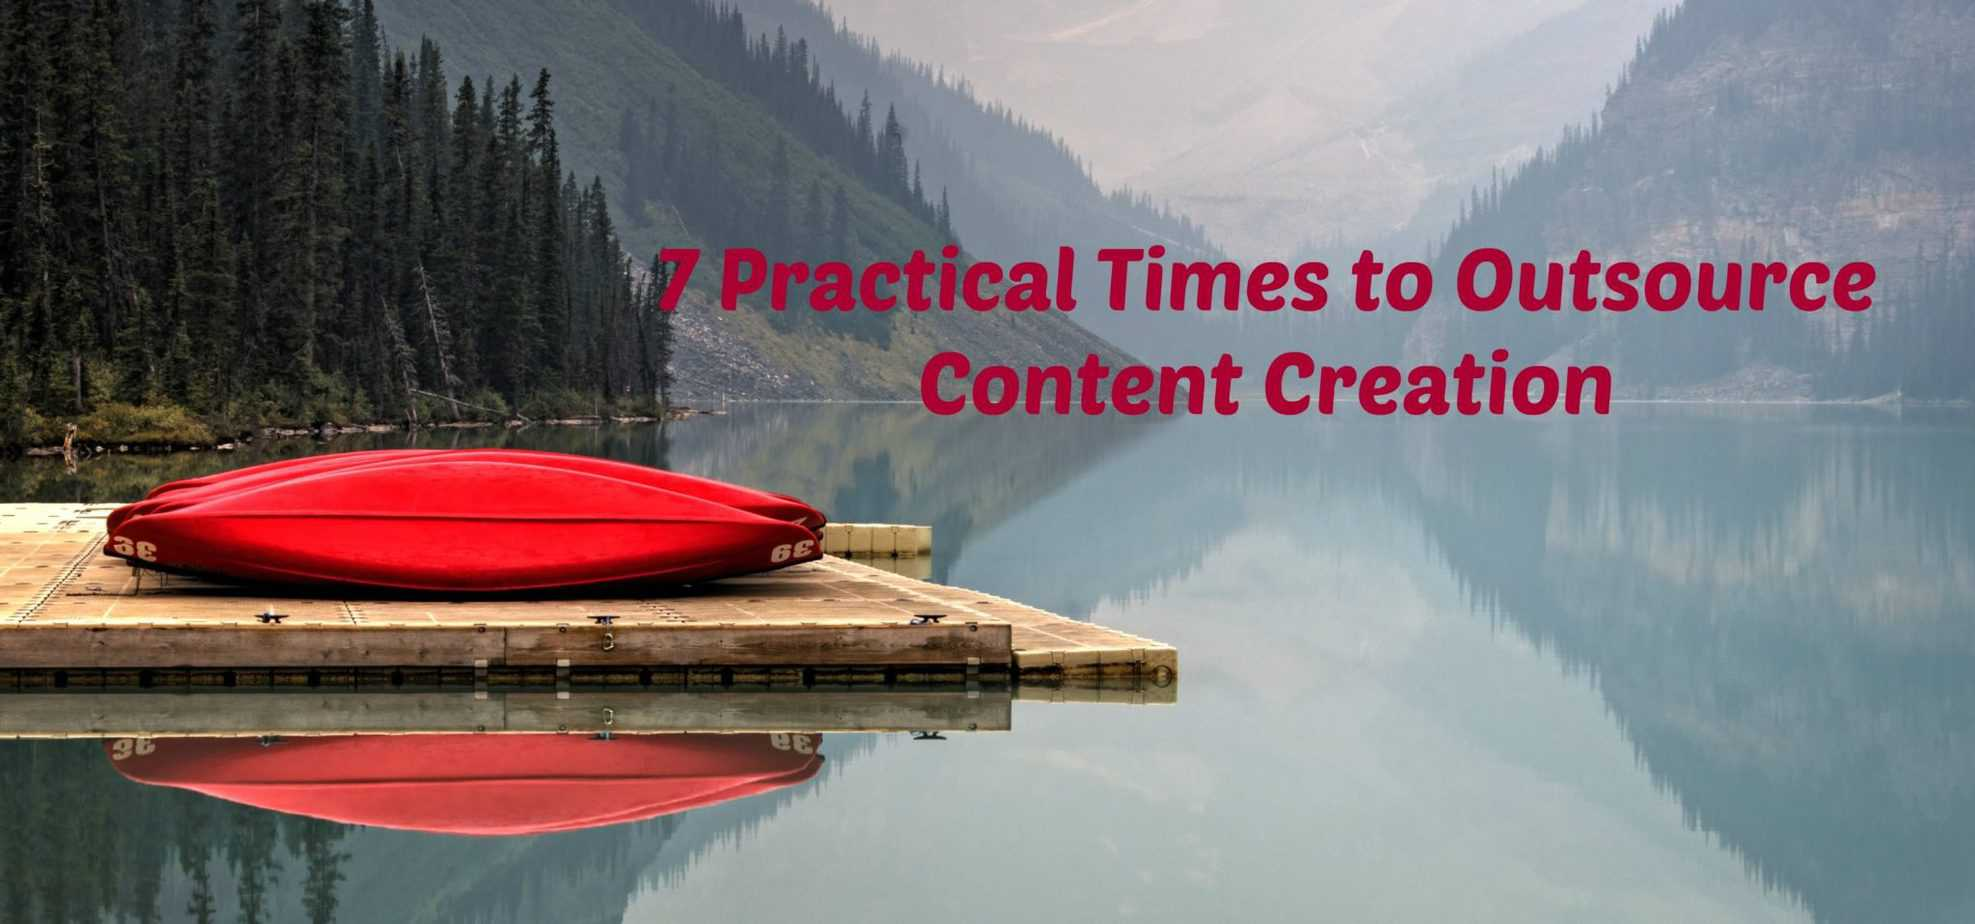 7 Practical Times to Outsource Content Creation